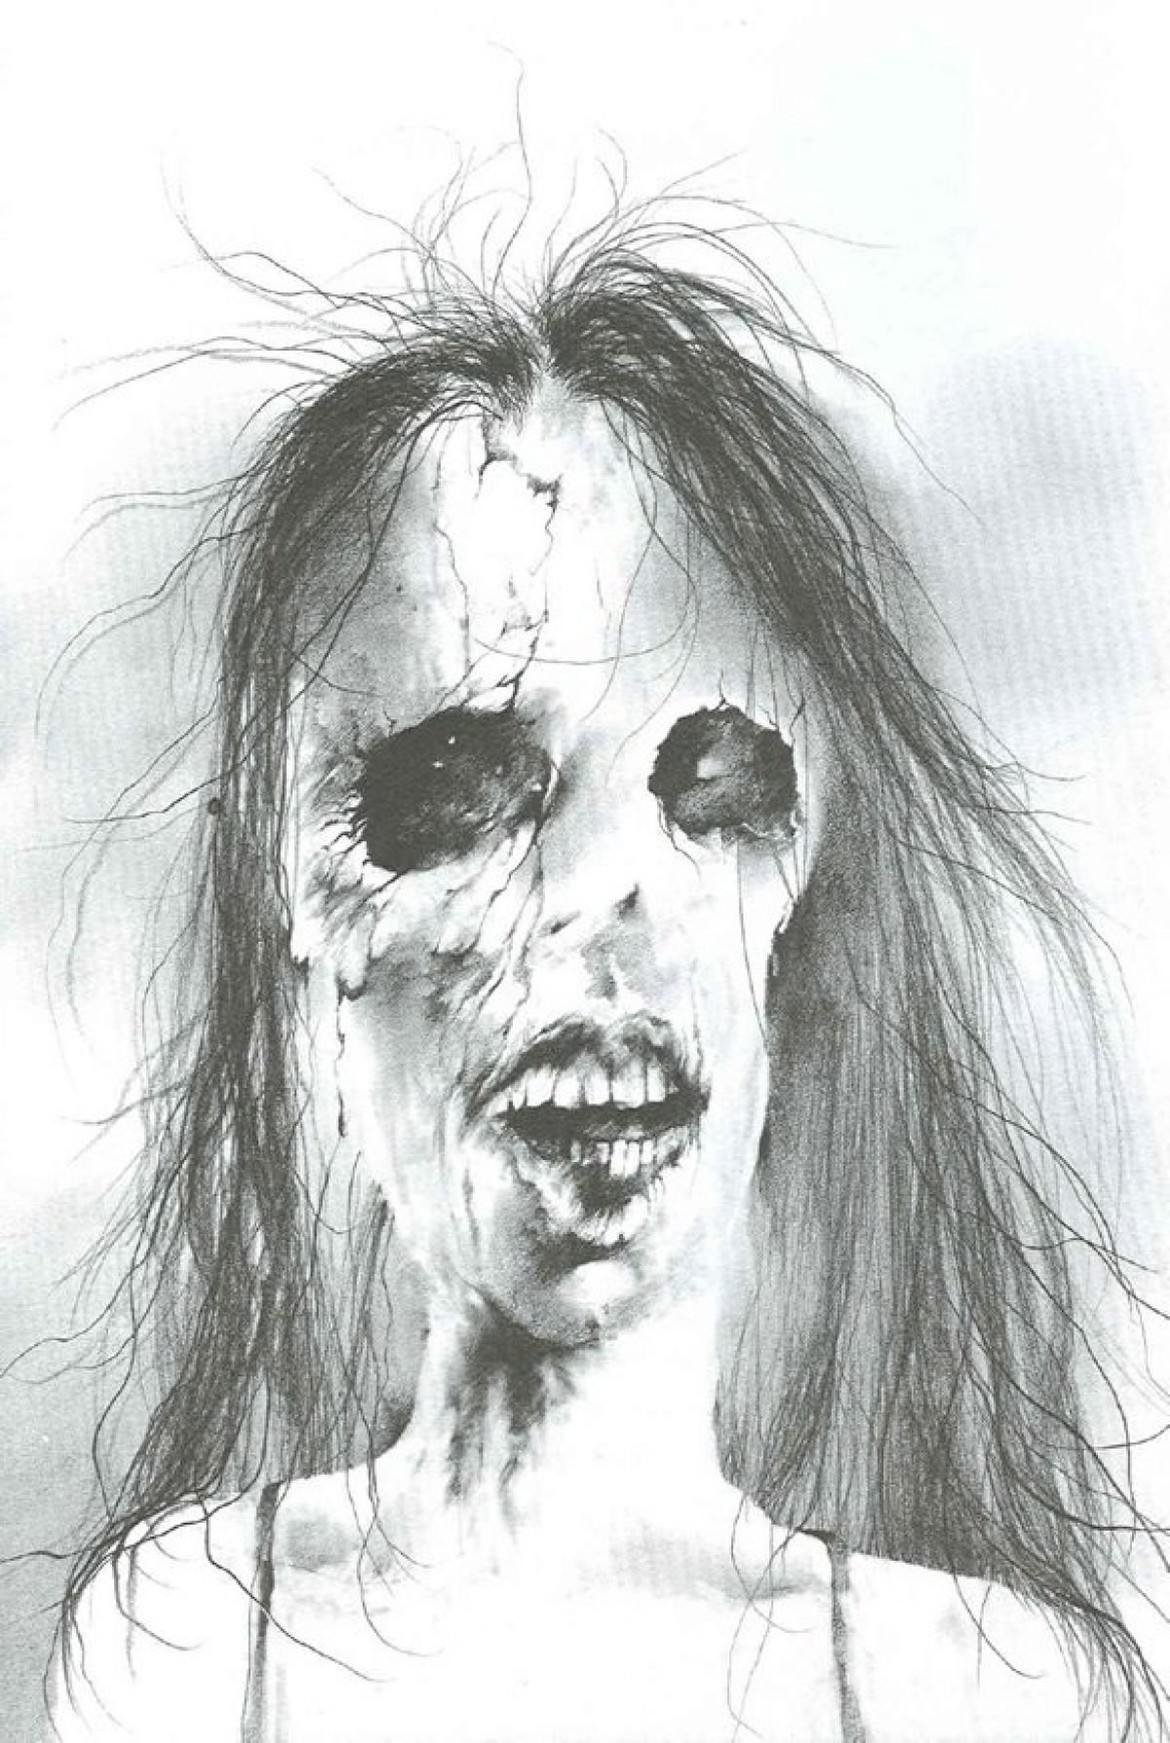 Scary-Stories-2_1200_1788_81_s.jpg